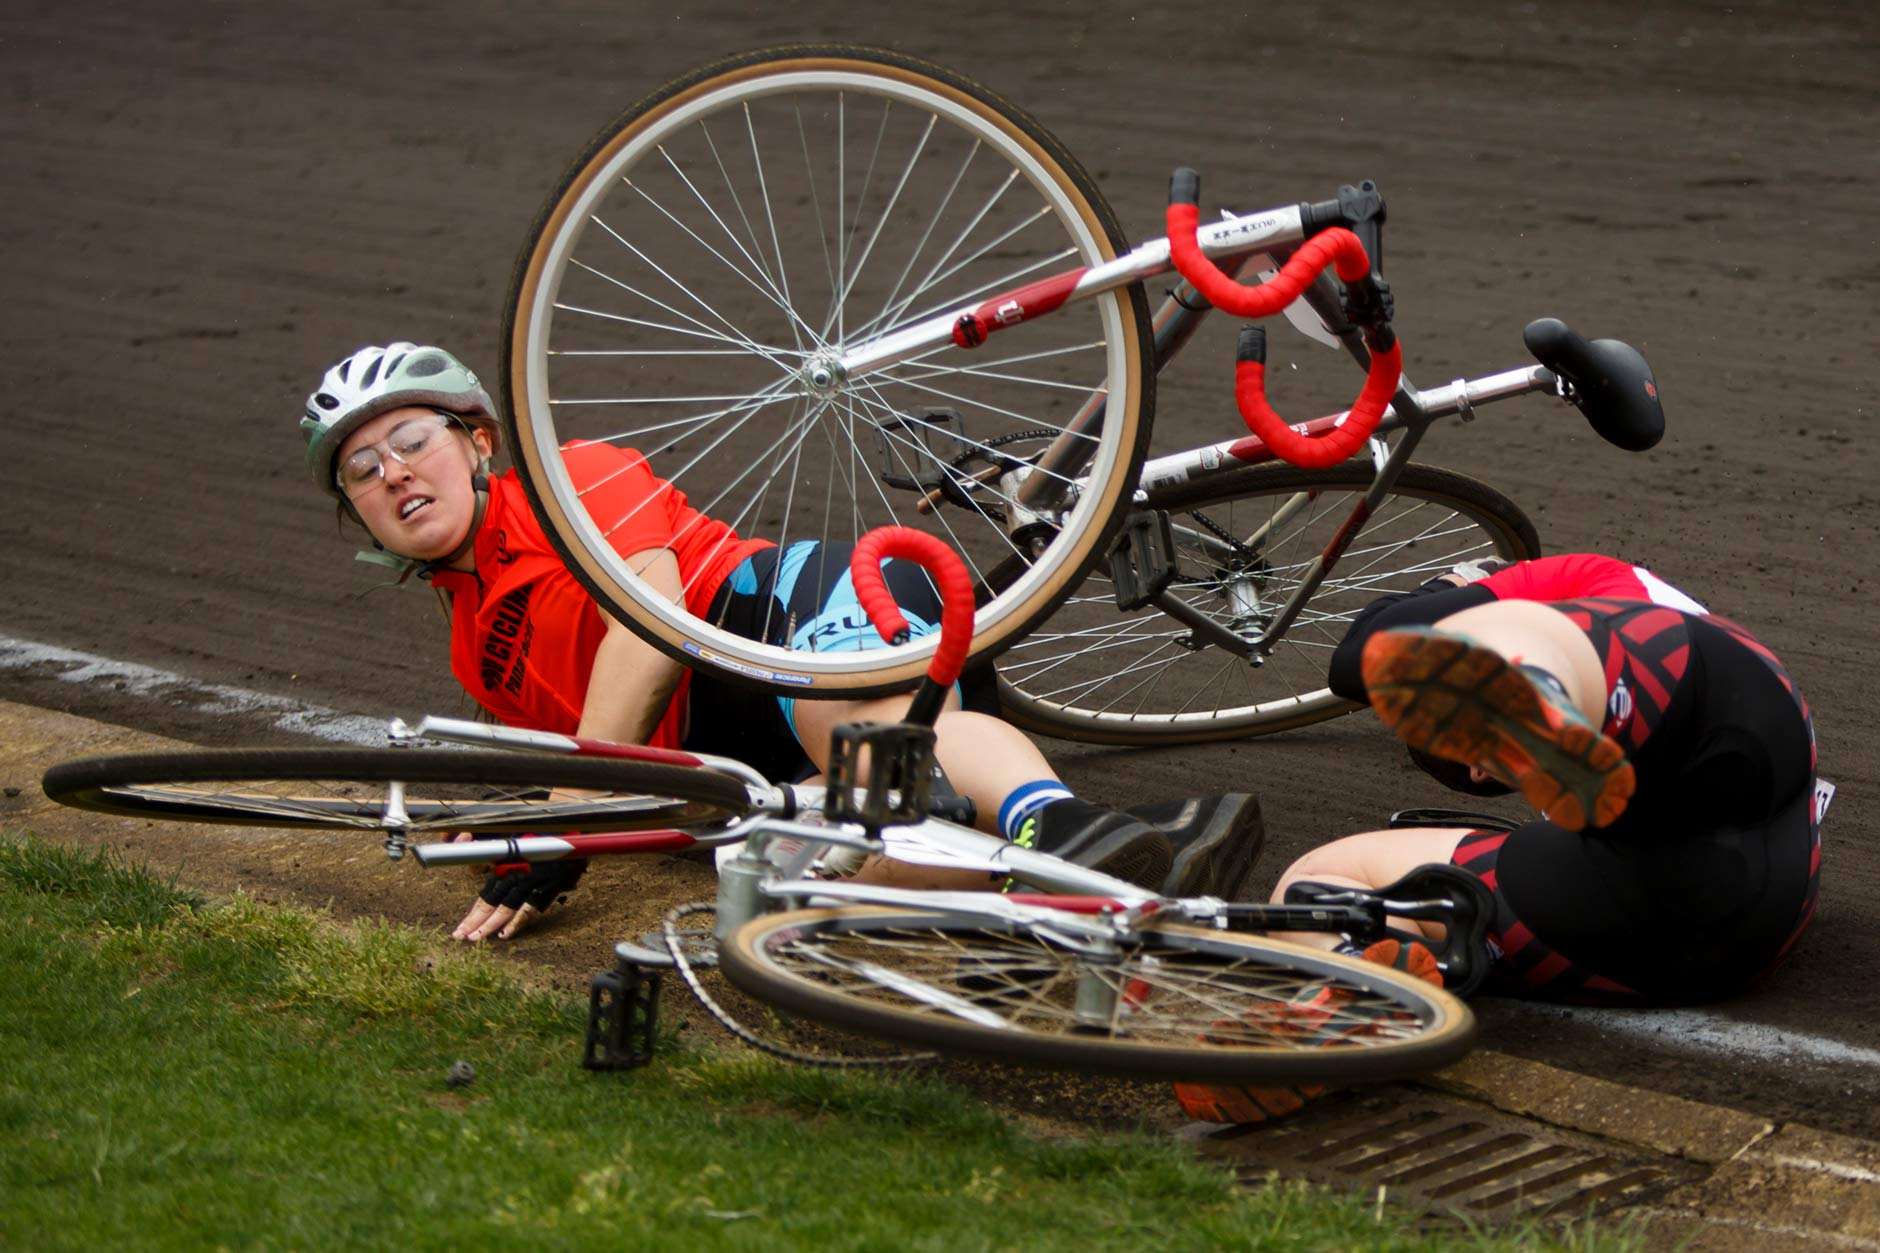 Cru Cycling rider Emma McCardwell, left, falls to the cinder as she wrecks with Phi Mu rider Abby Vehrs during the Women's Little 500 at Bill Armstrong Stadium on Friday, April 21, 2017. (James Brosher/IU Communications)